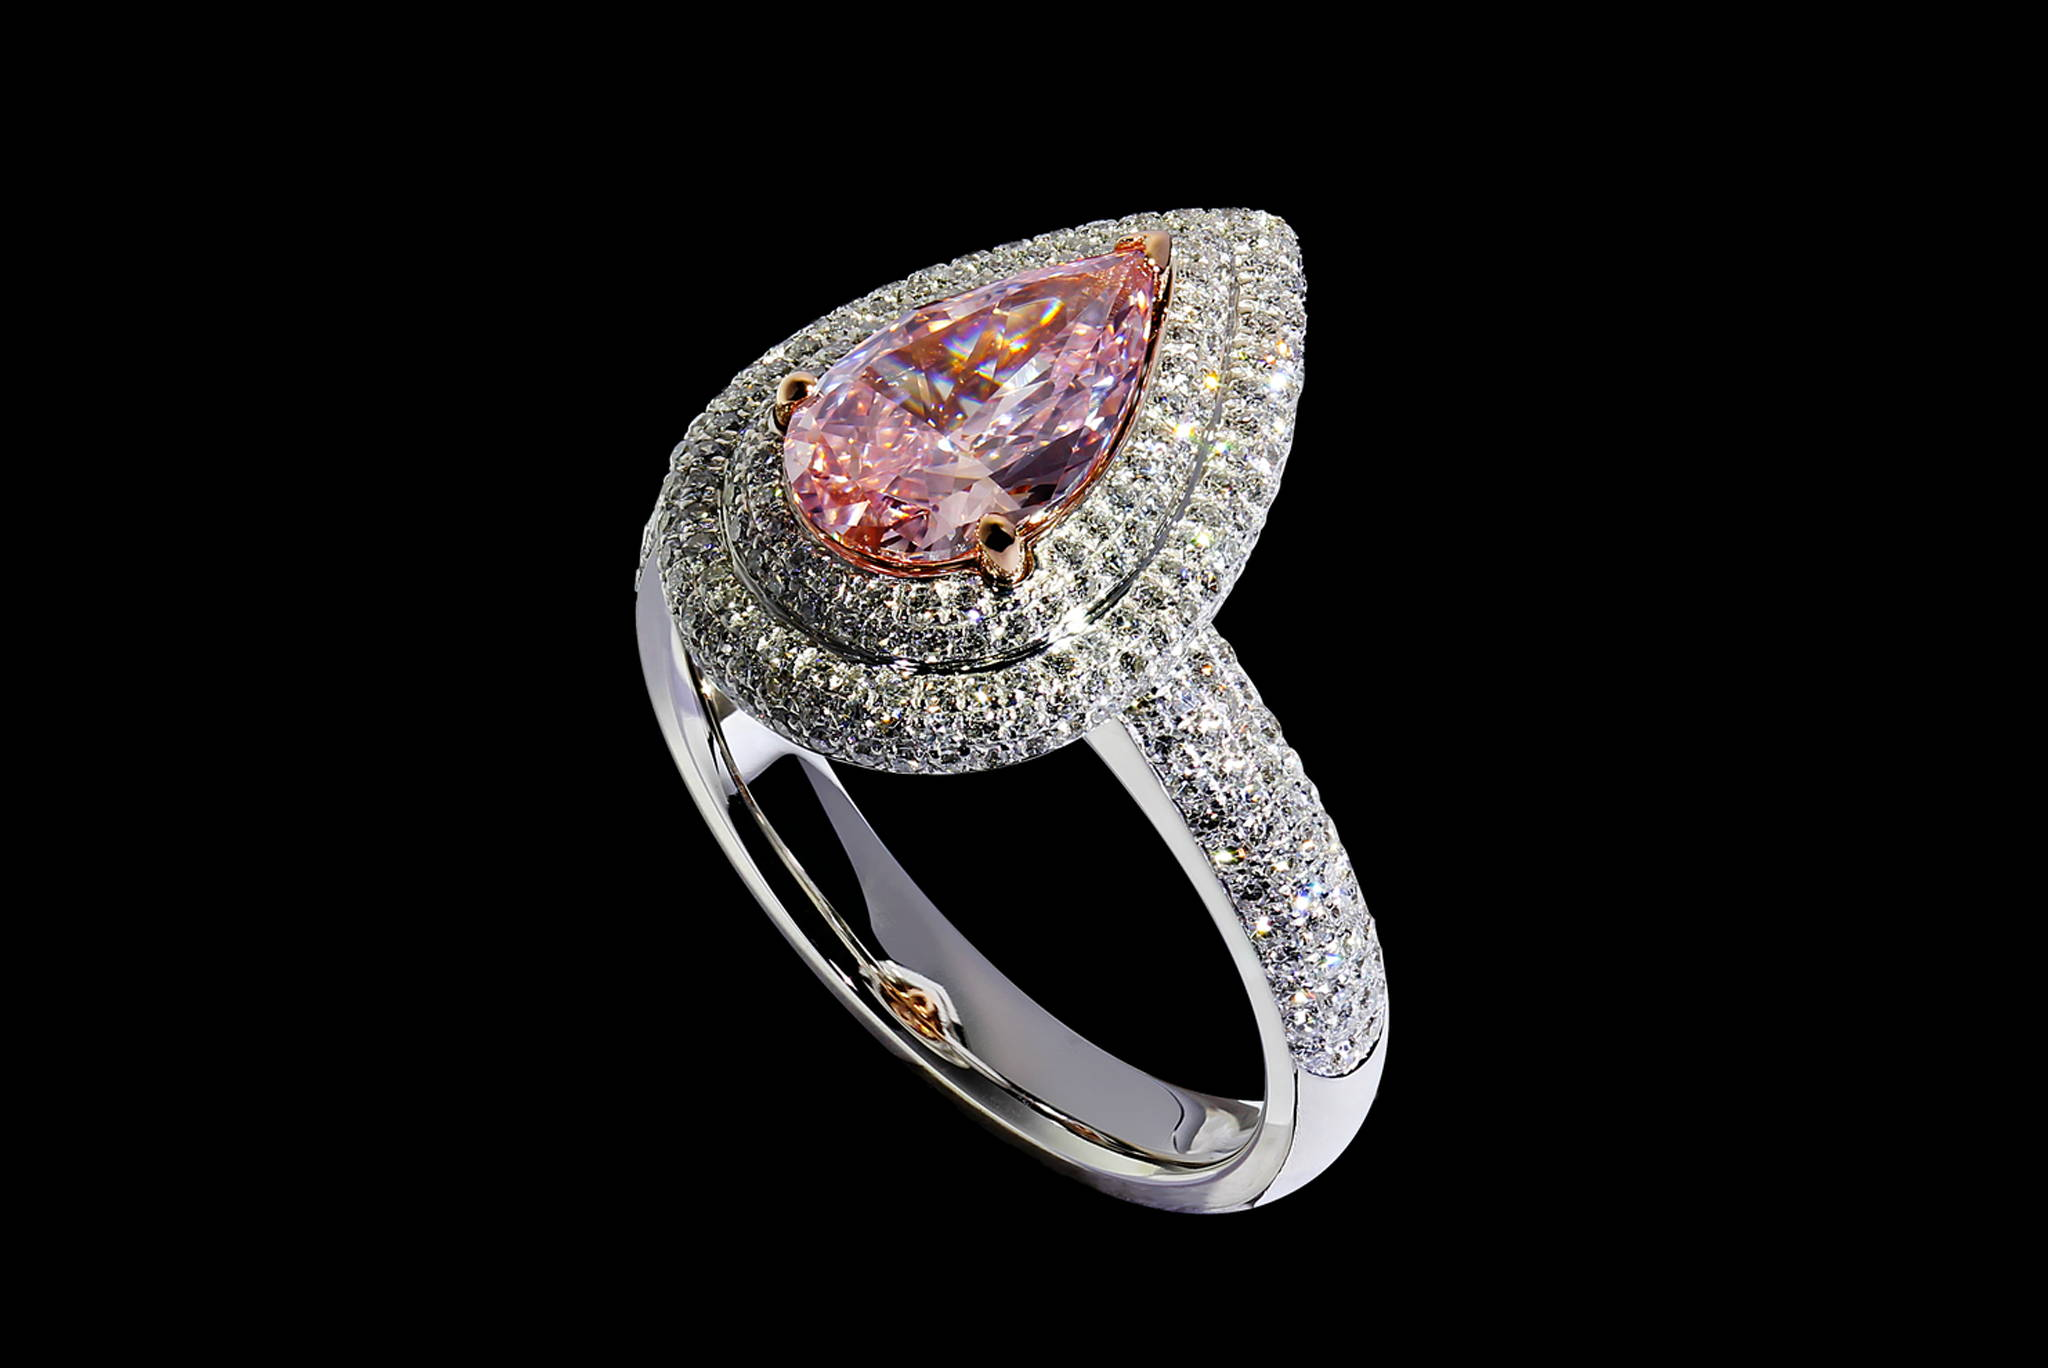 Vintage Style Pink Diamond Ring 45 degrees view